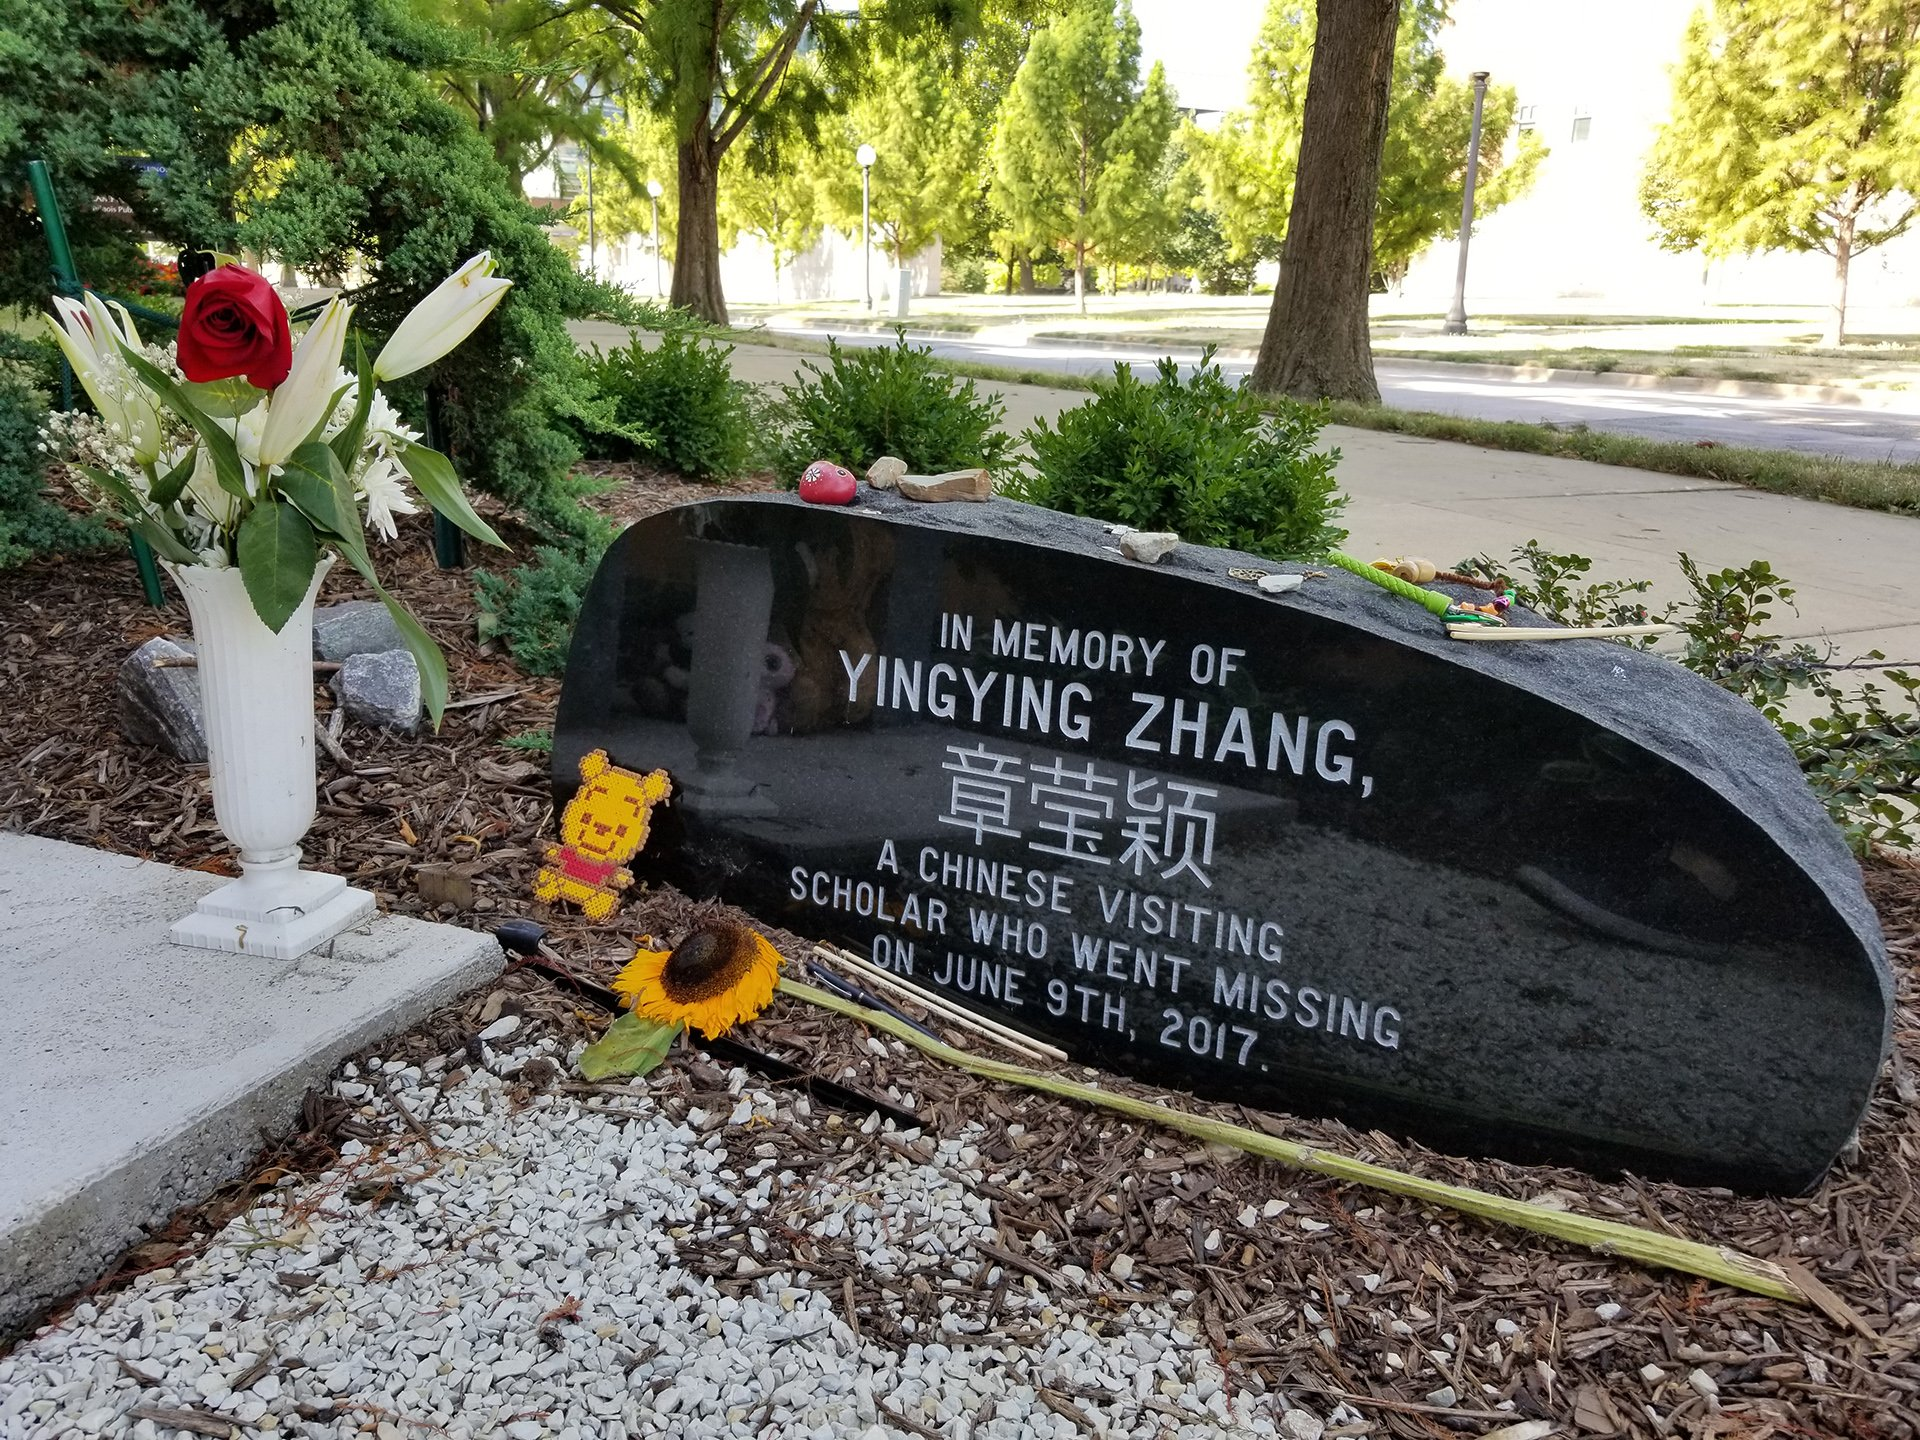 A memorial stone engraved with Yingying Zhang's name in both English and Chinese on the campus of the University of Illinois at Urbana-Champaign on Aug. 7, 2019.  (Matt Masterson / WTTW News)